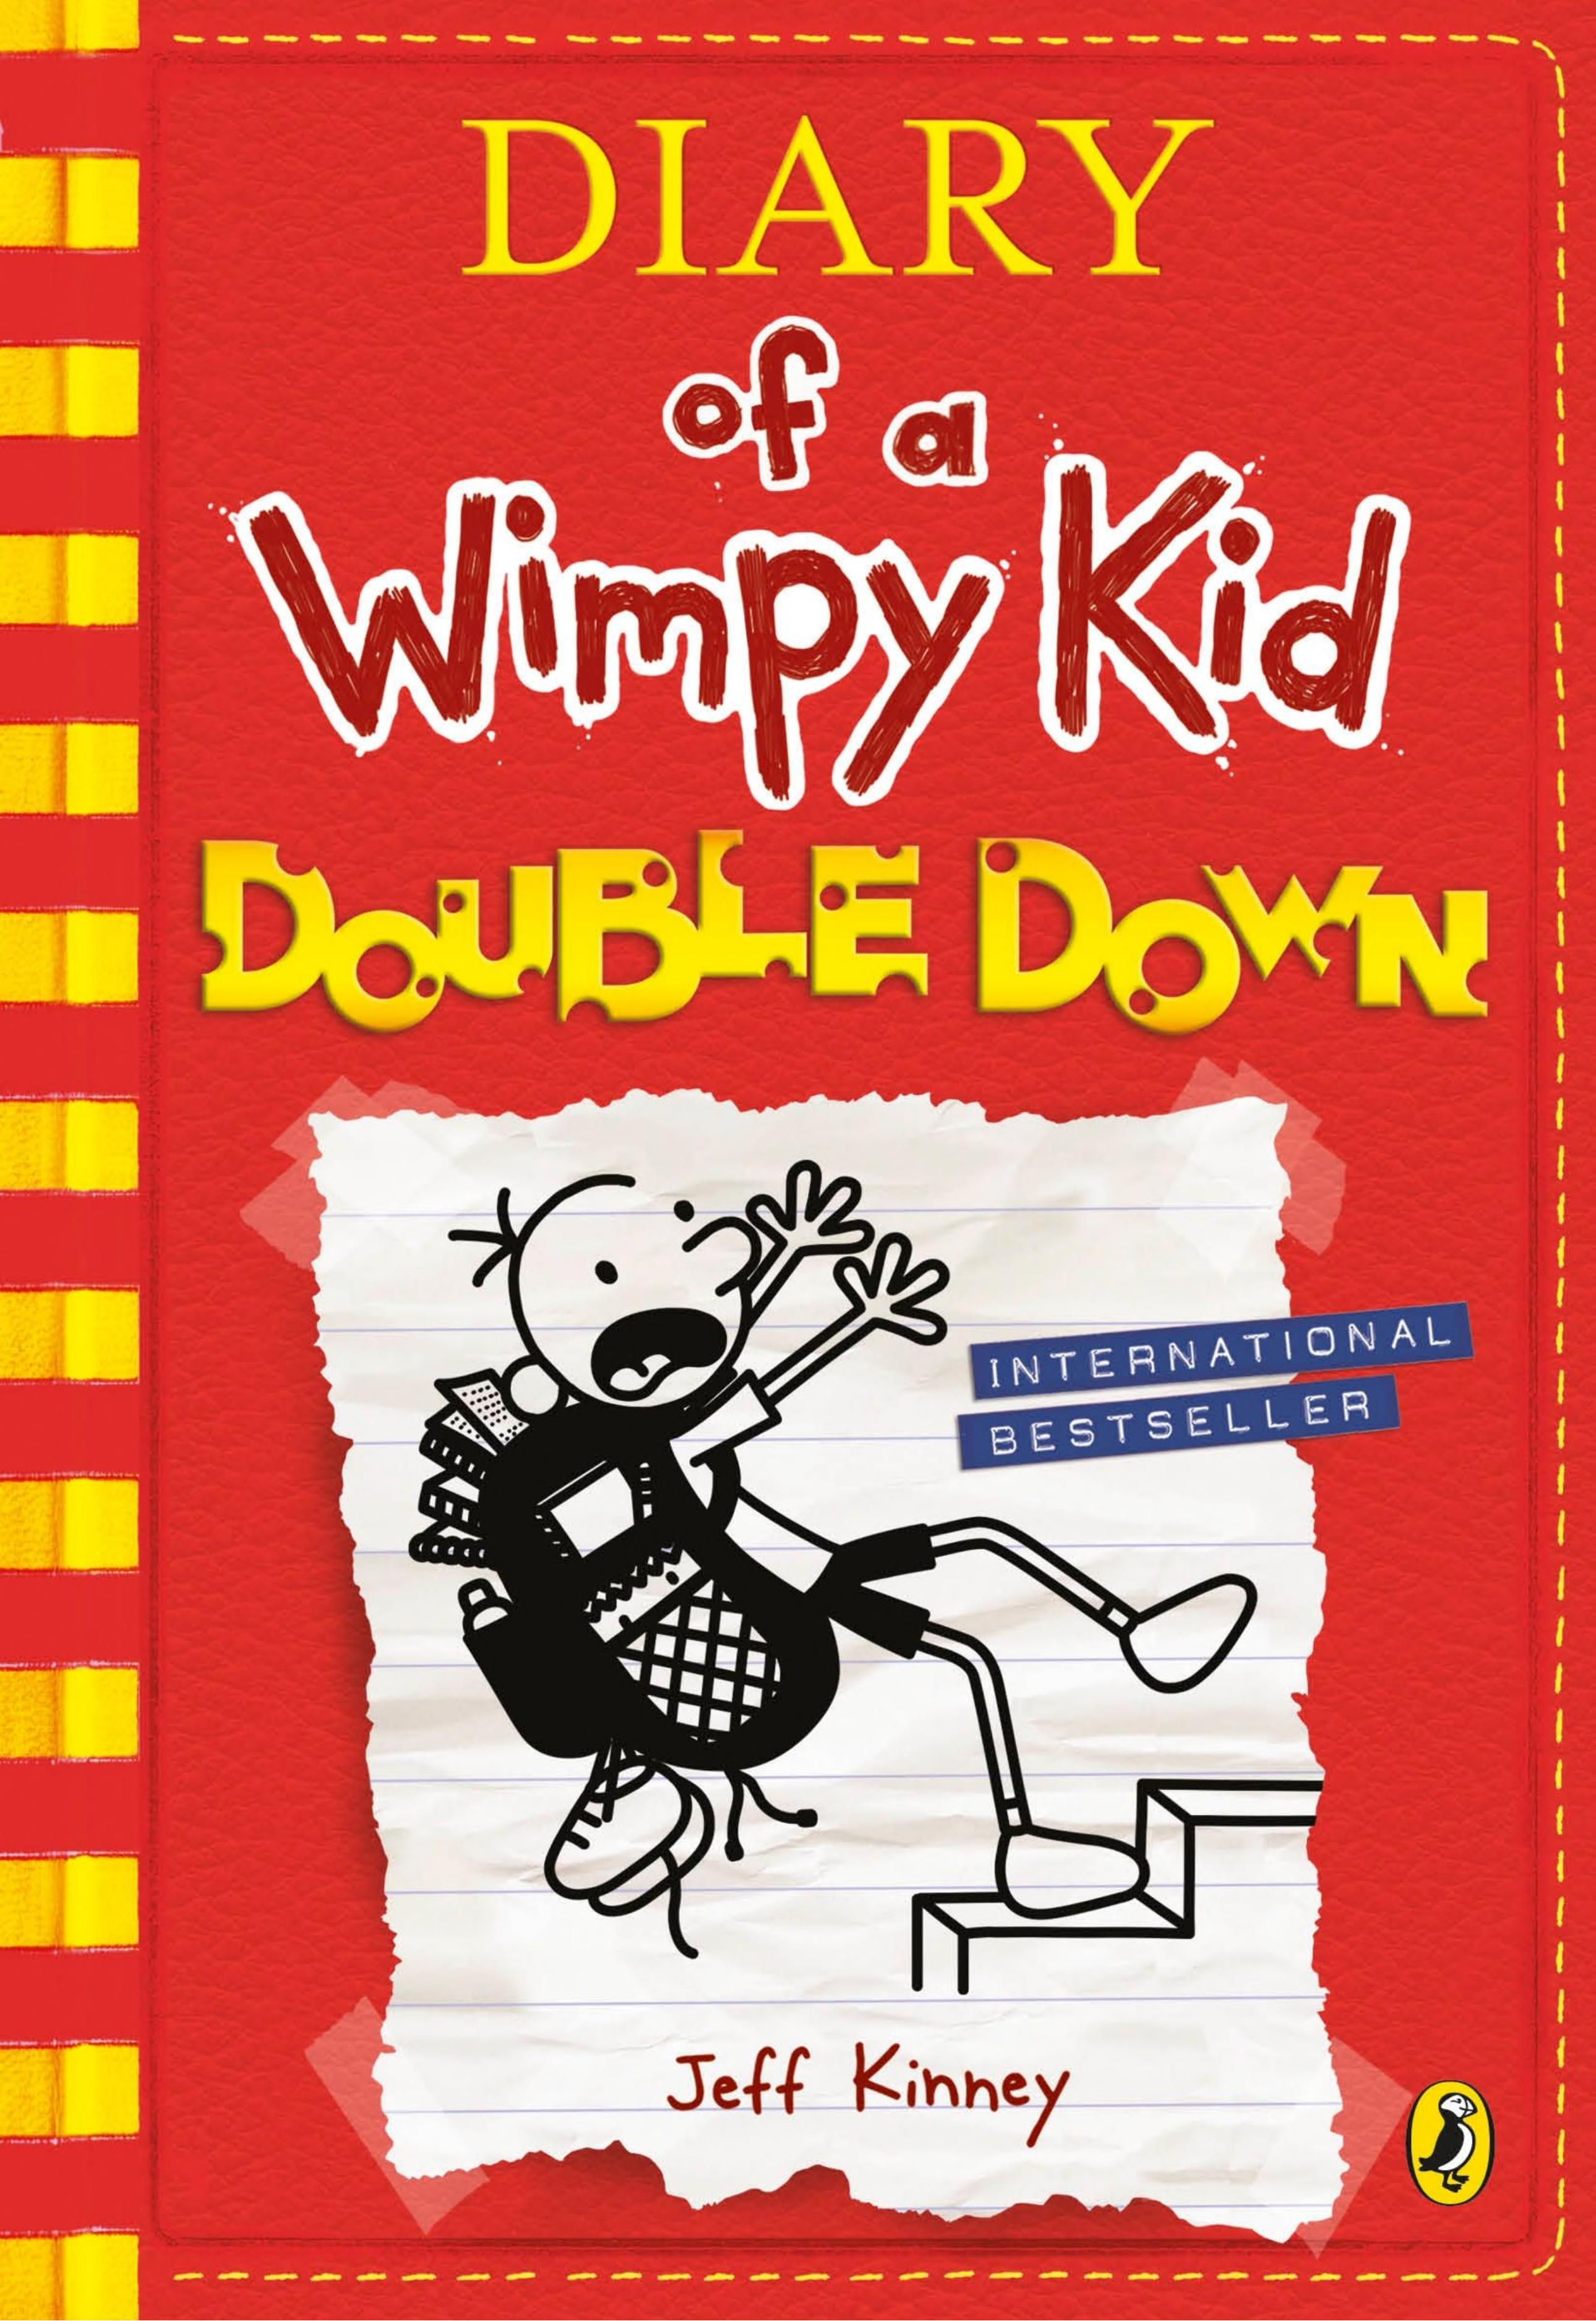 Double Down  Diary of a Wimpy Kid book 11